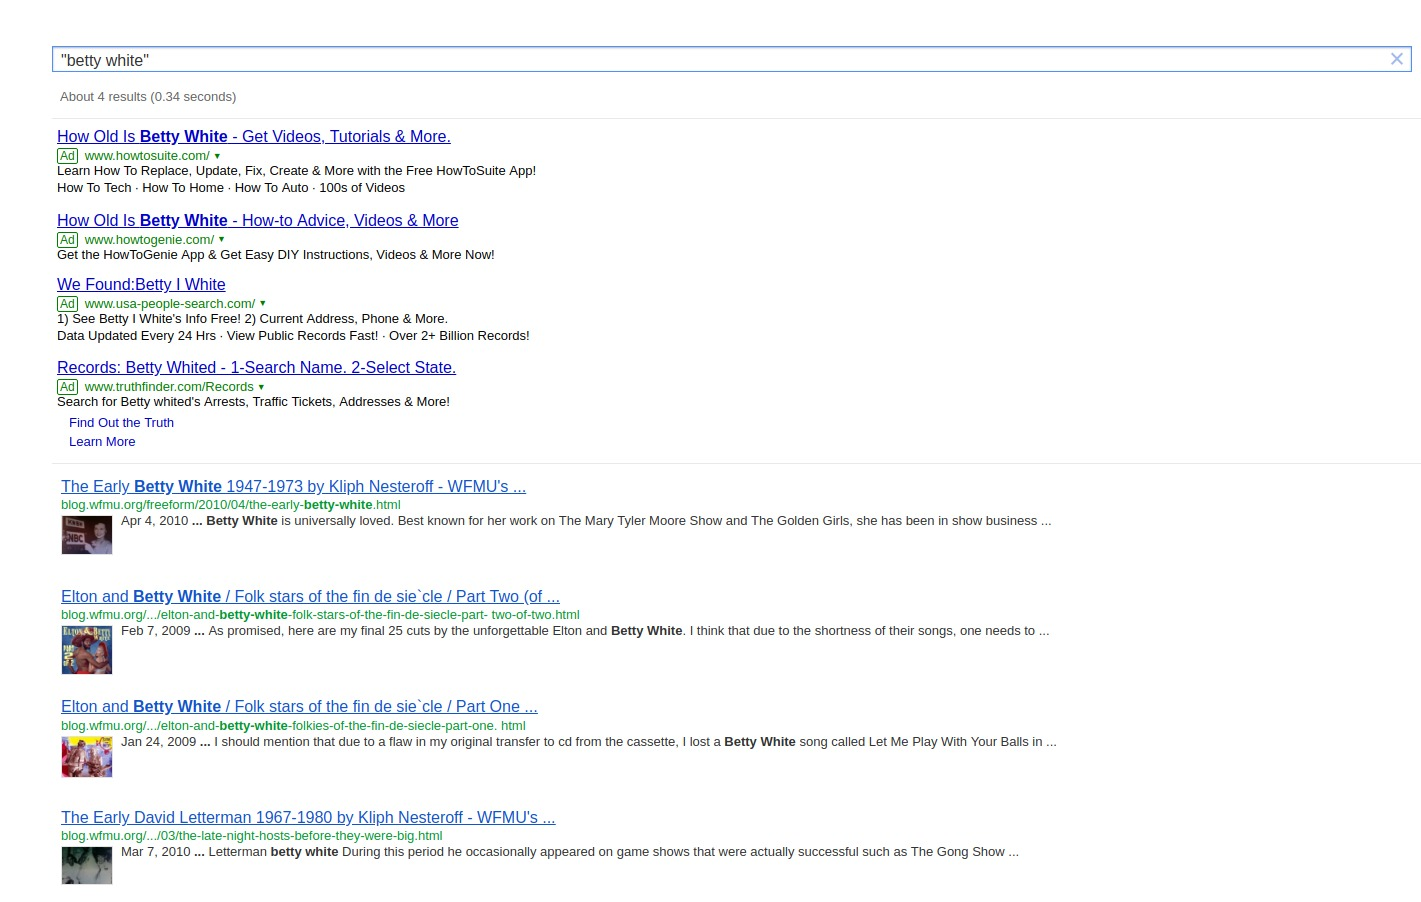 A Tour of ResearchBuzz Search Engines from Google Custom Search